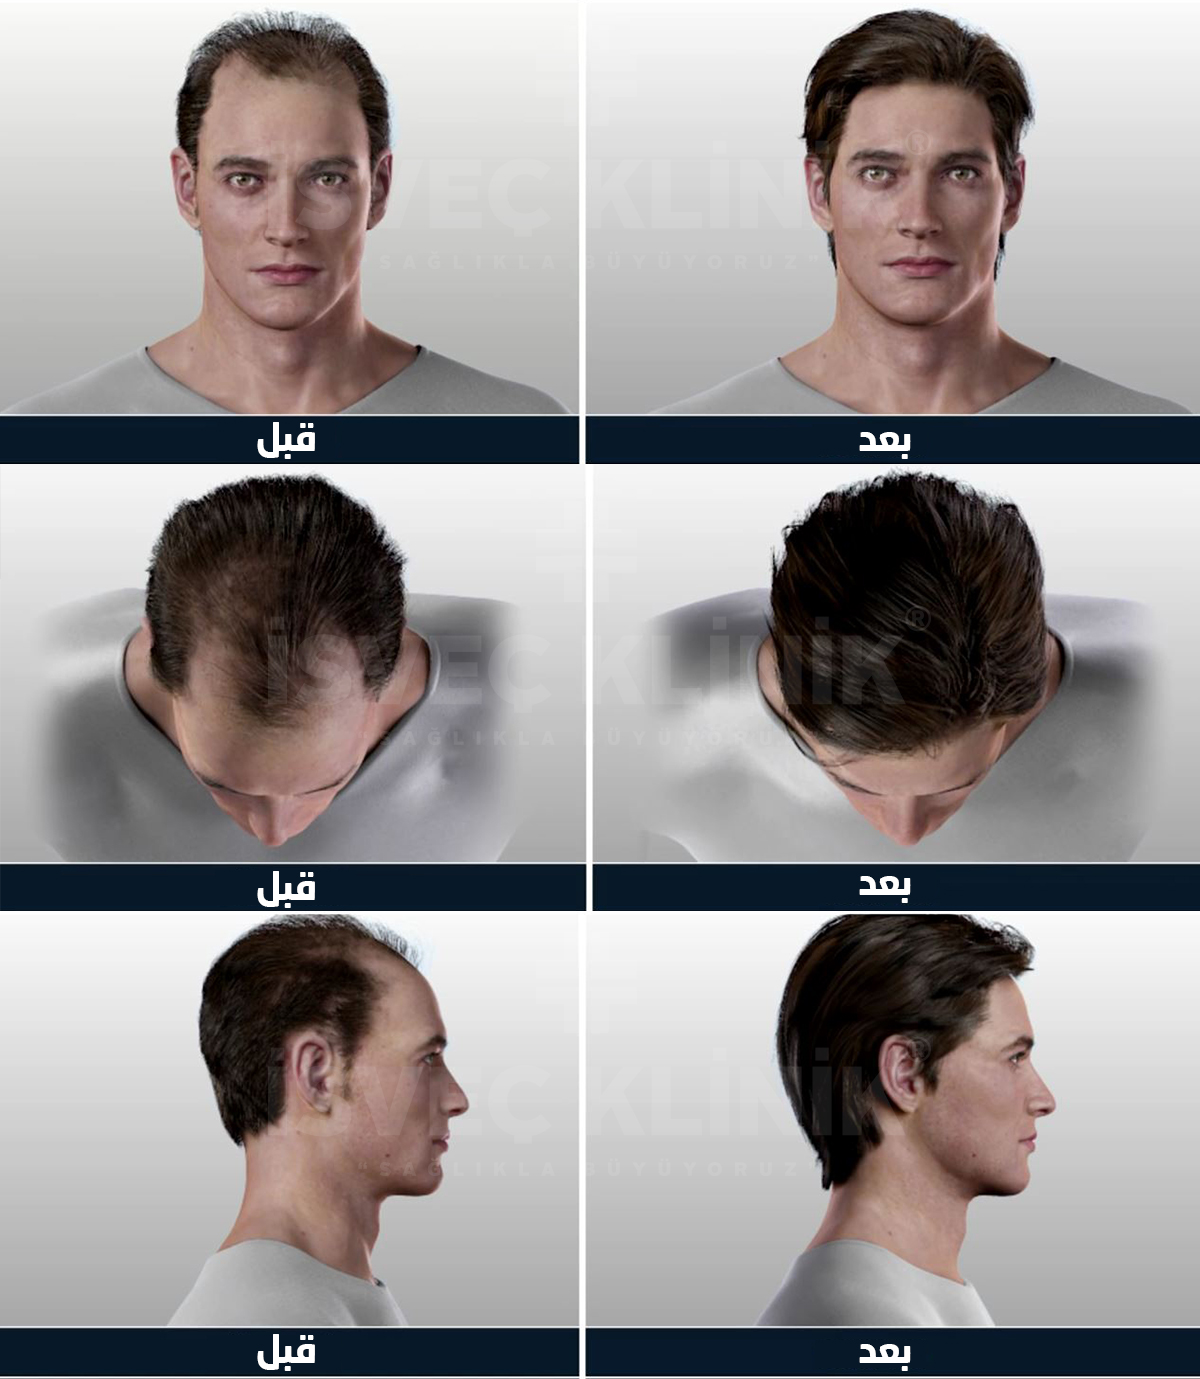 hair transplant after before